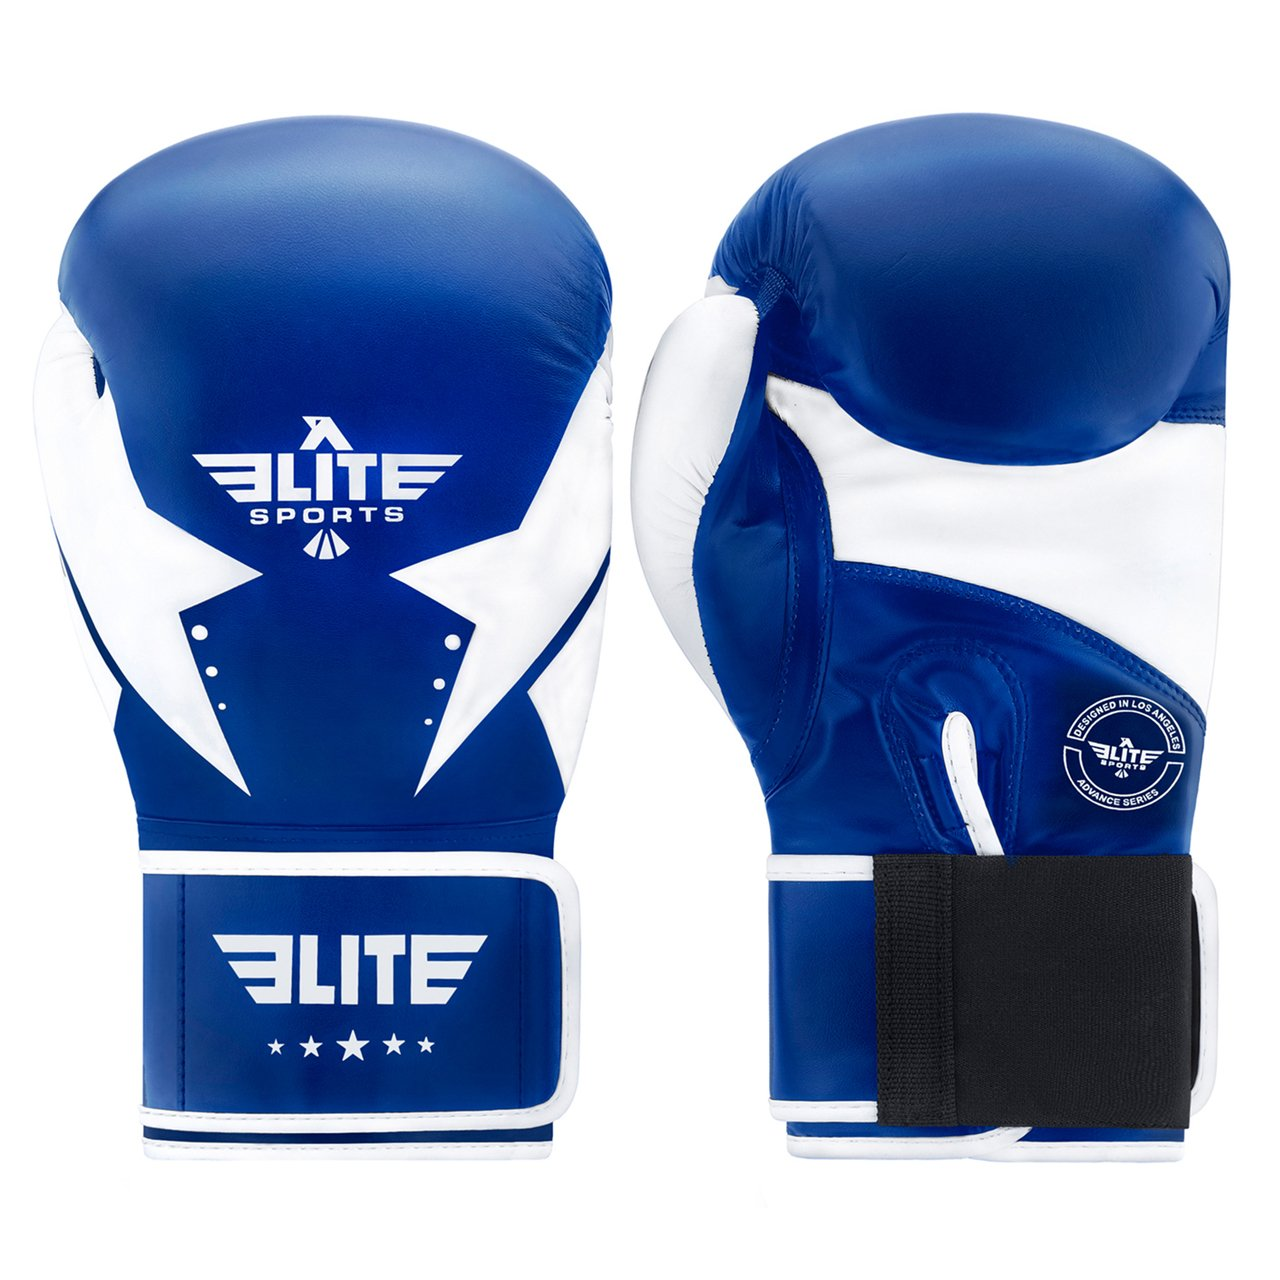 Load image into Gallery viewer, Elite Sports Star Series Blue/White Adult  Boxing Gloves